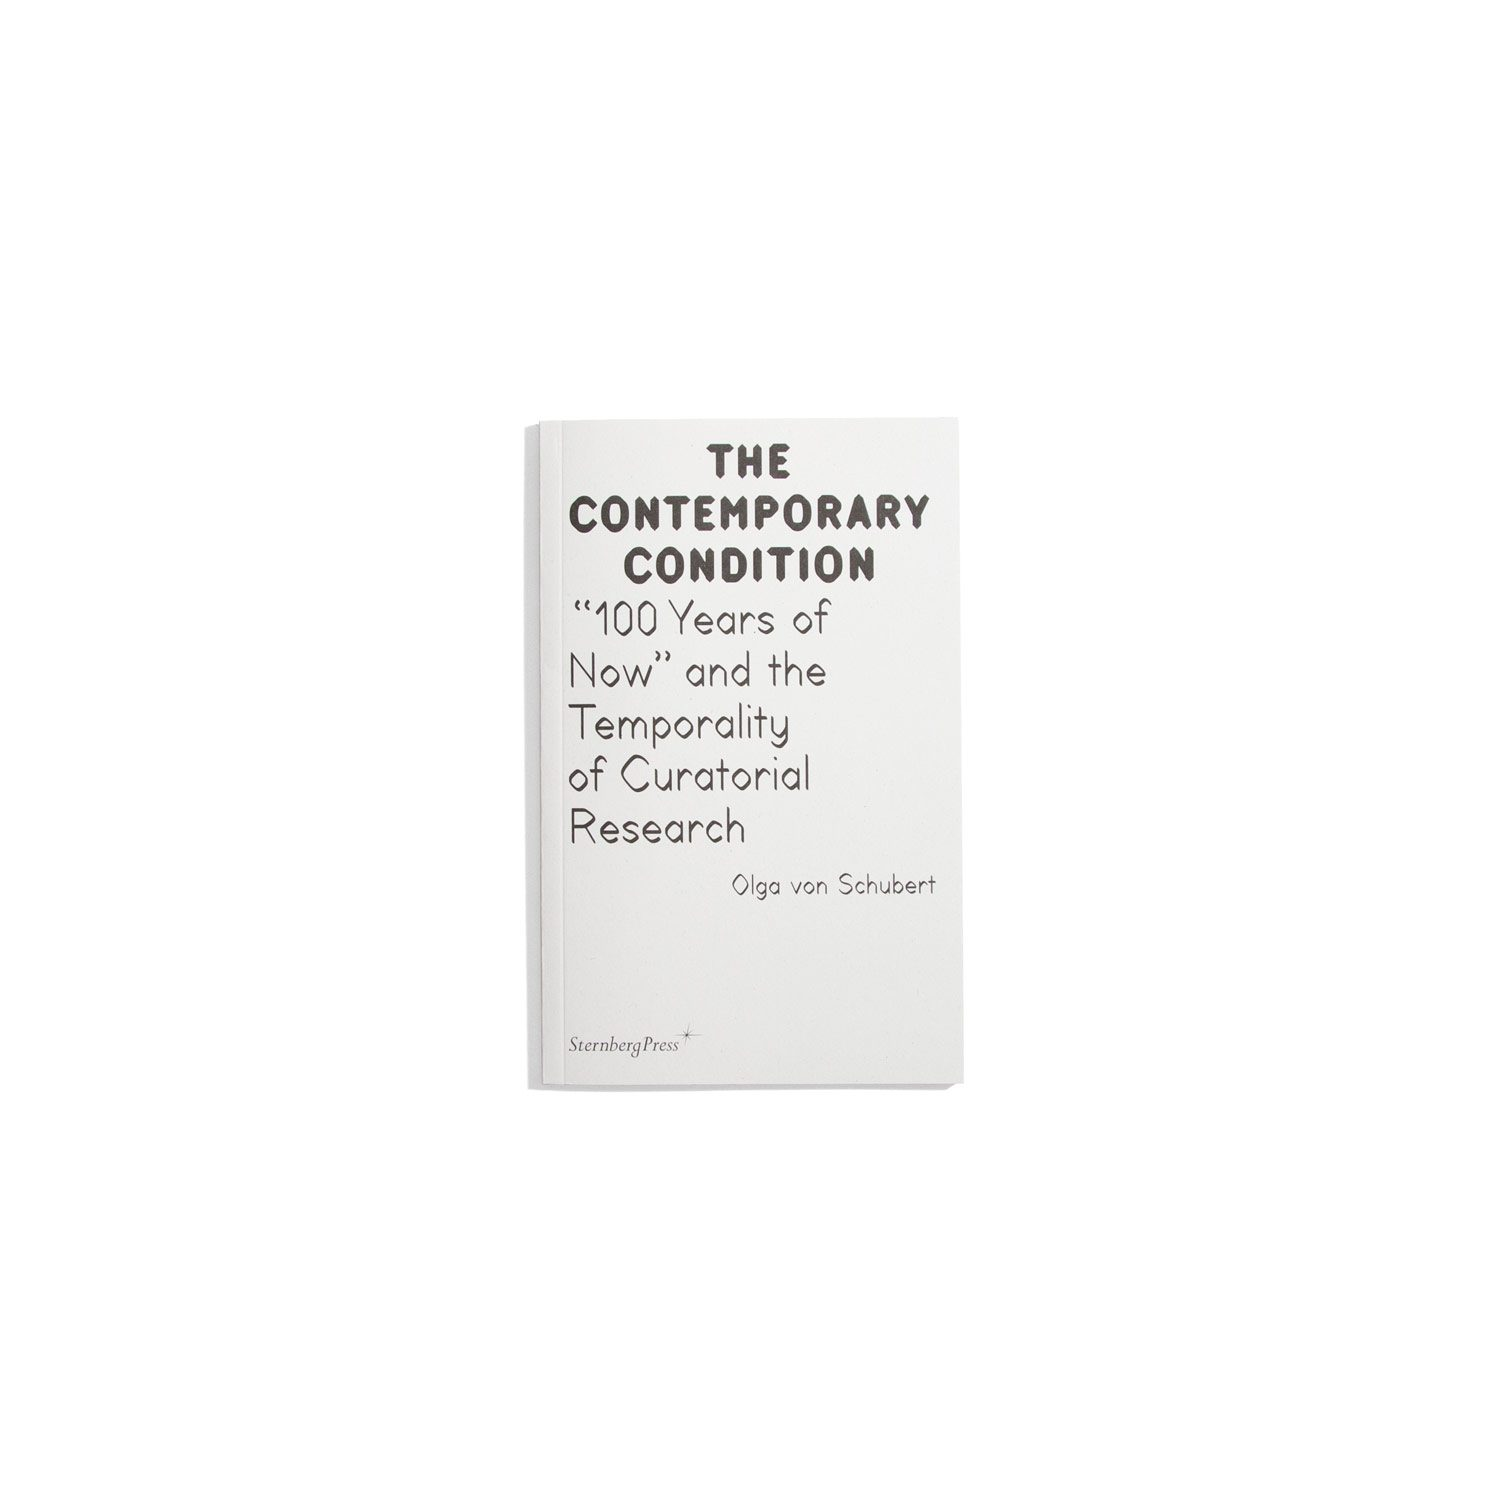 """The Contemporary Condition #11 - 100 Years of Now"""" and the Temporality of Curatorial Research"""